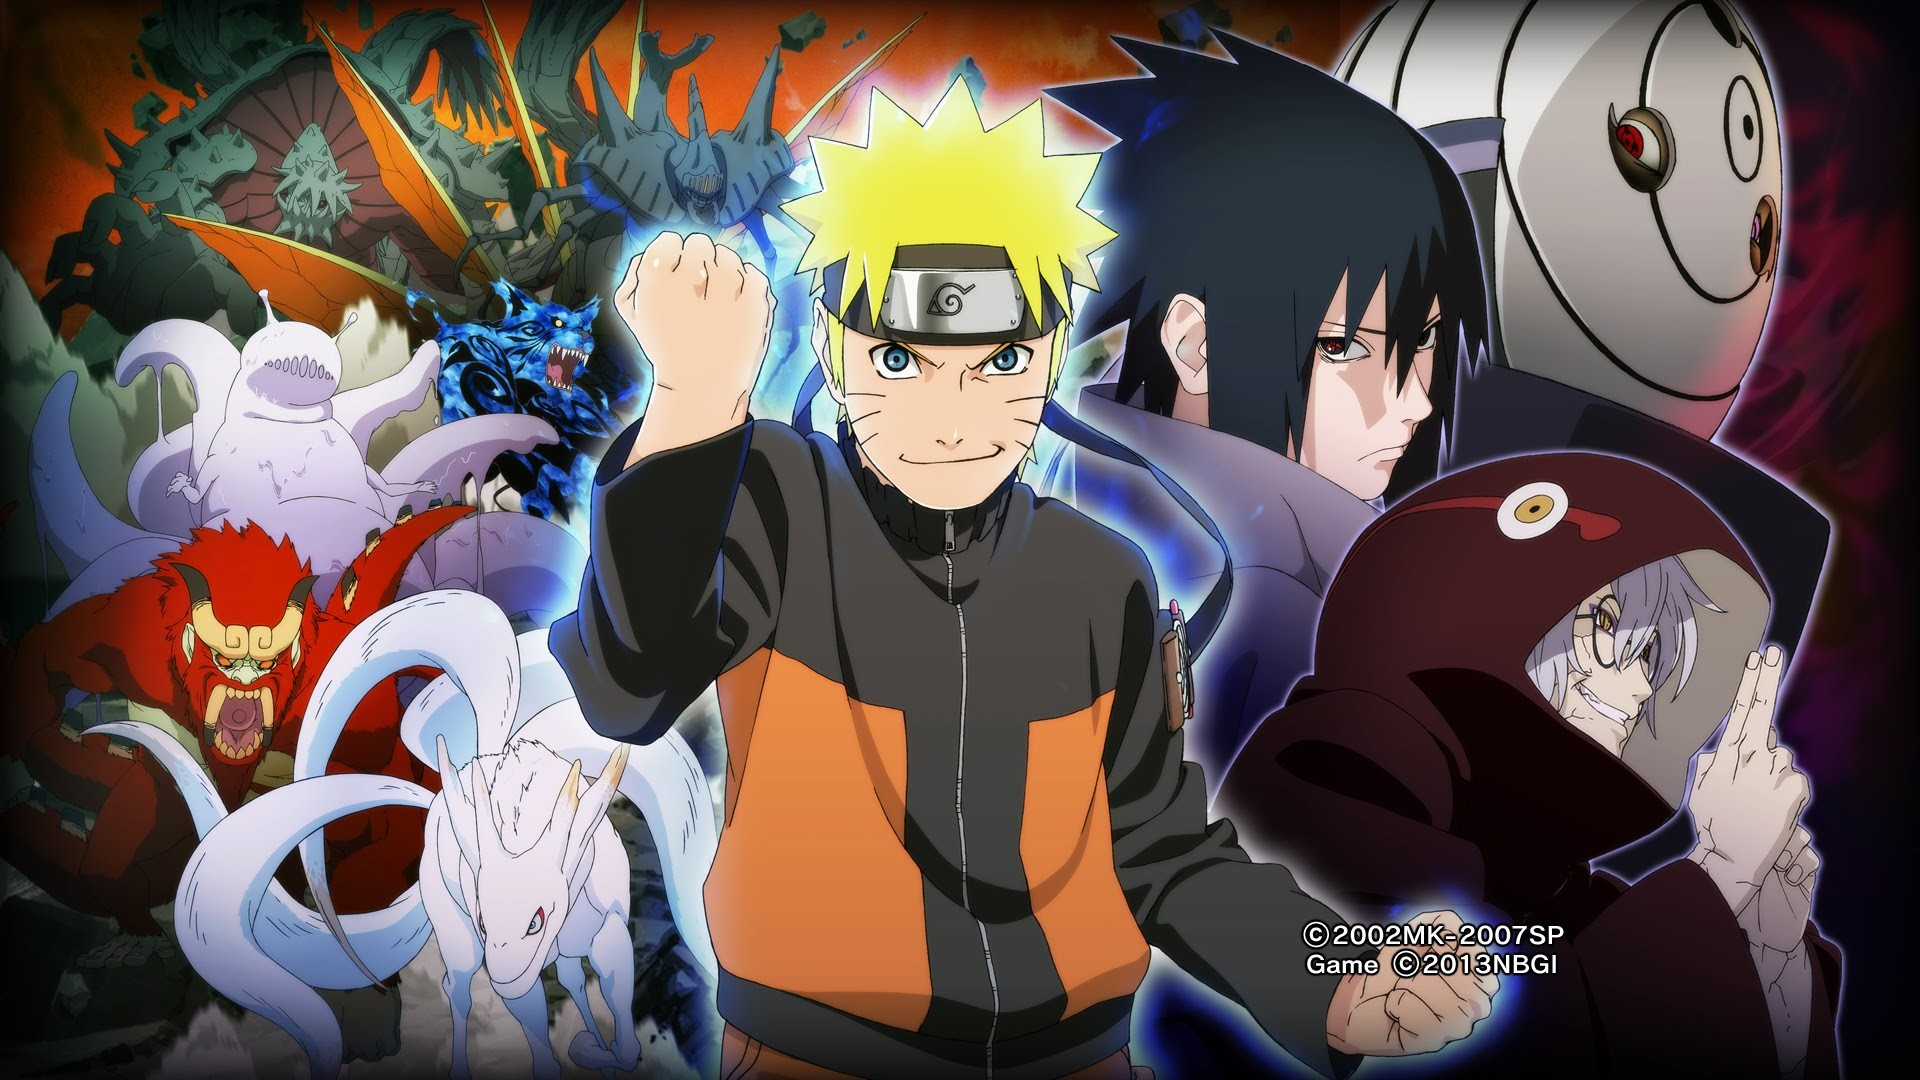 Great Wallpaper Naruto Tablet - 873874-zabuza-wallpapers-1920x1080-for-tablet  Graphic.jpg